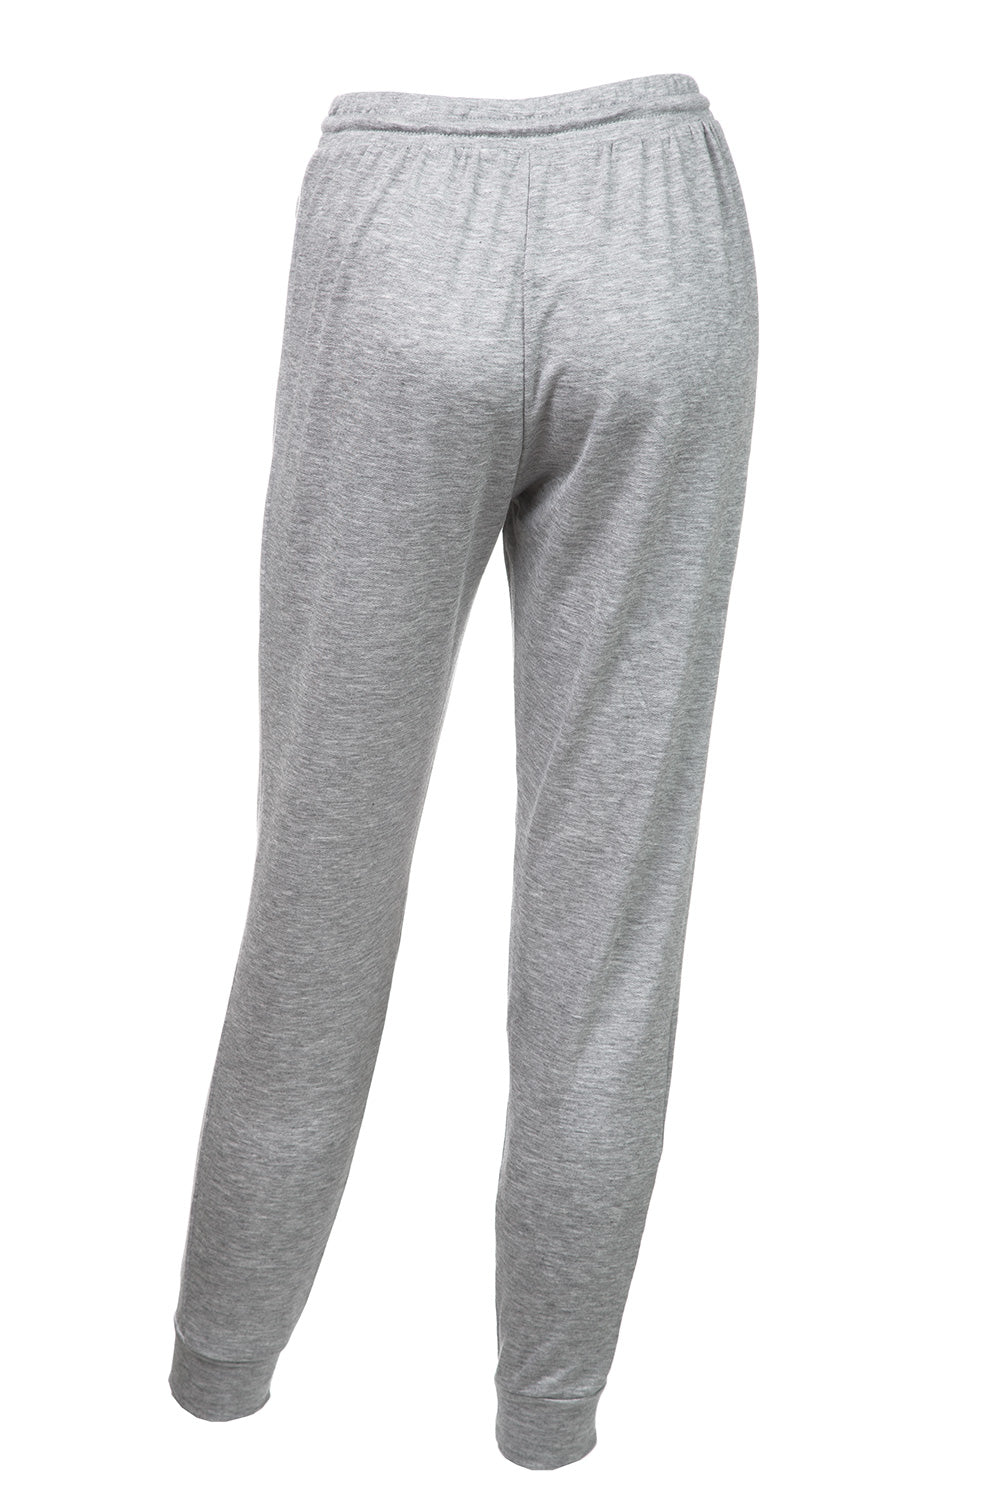 Type 2 Envelop Yourself Pants in Gray